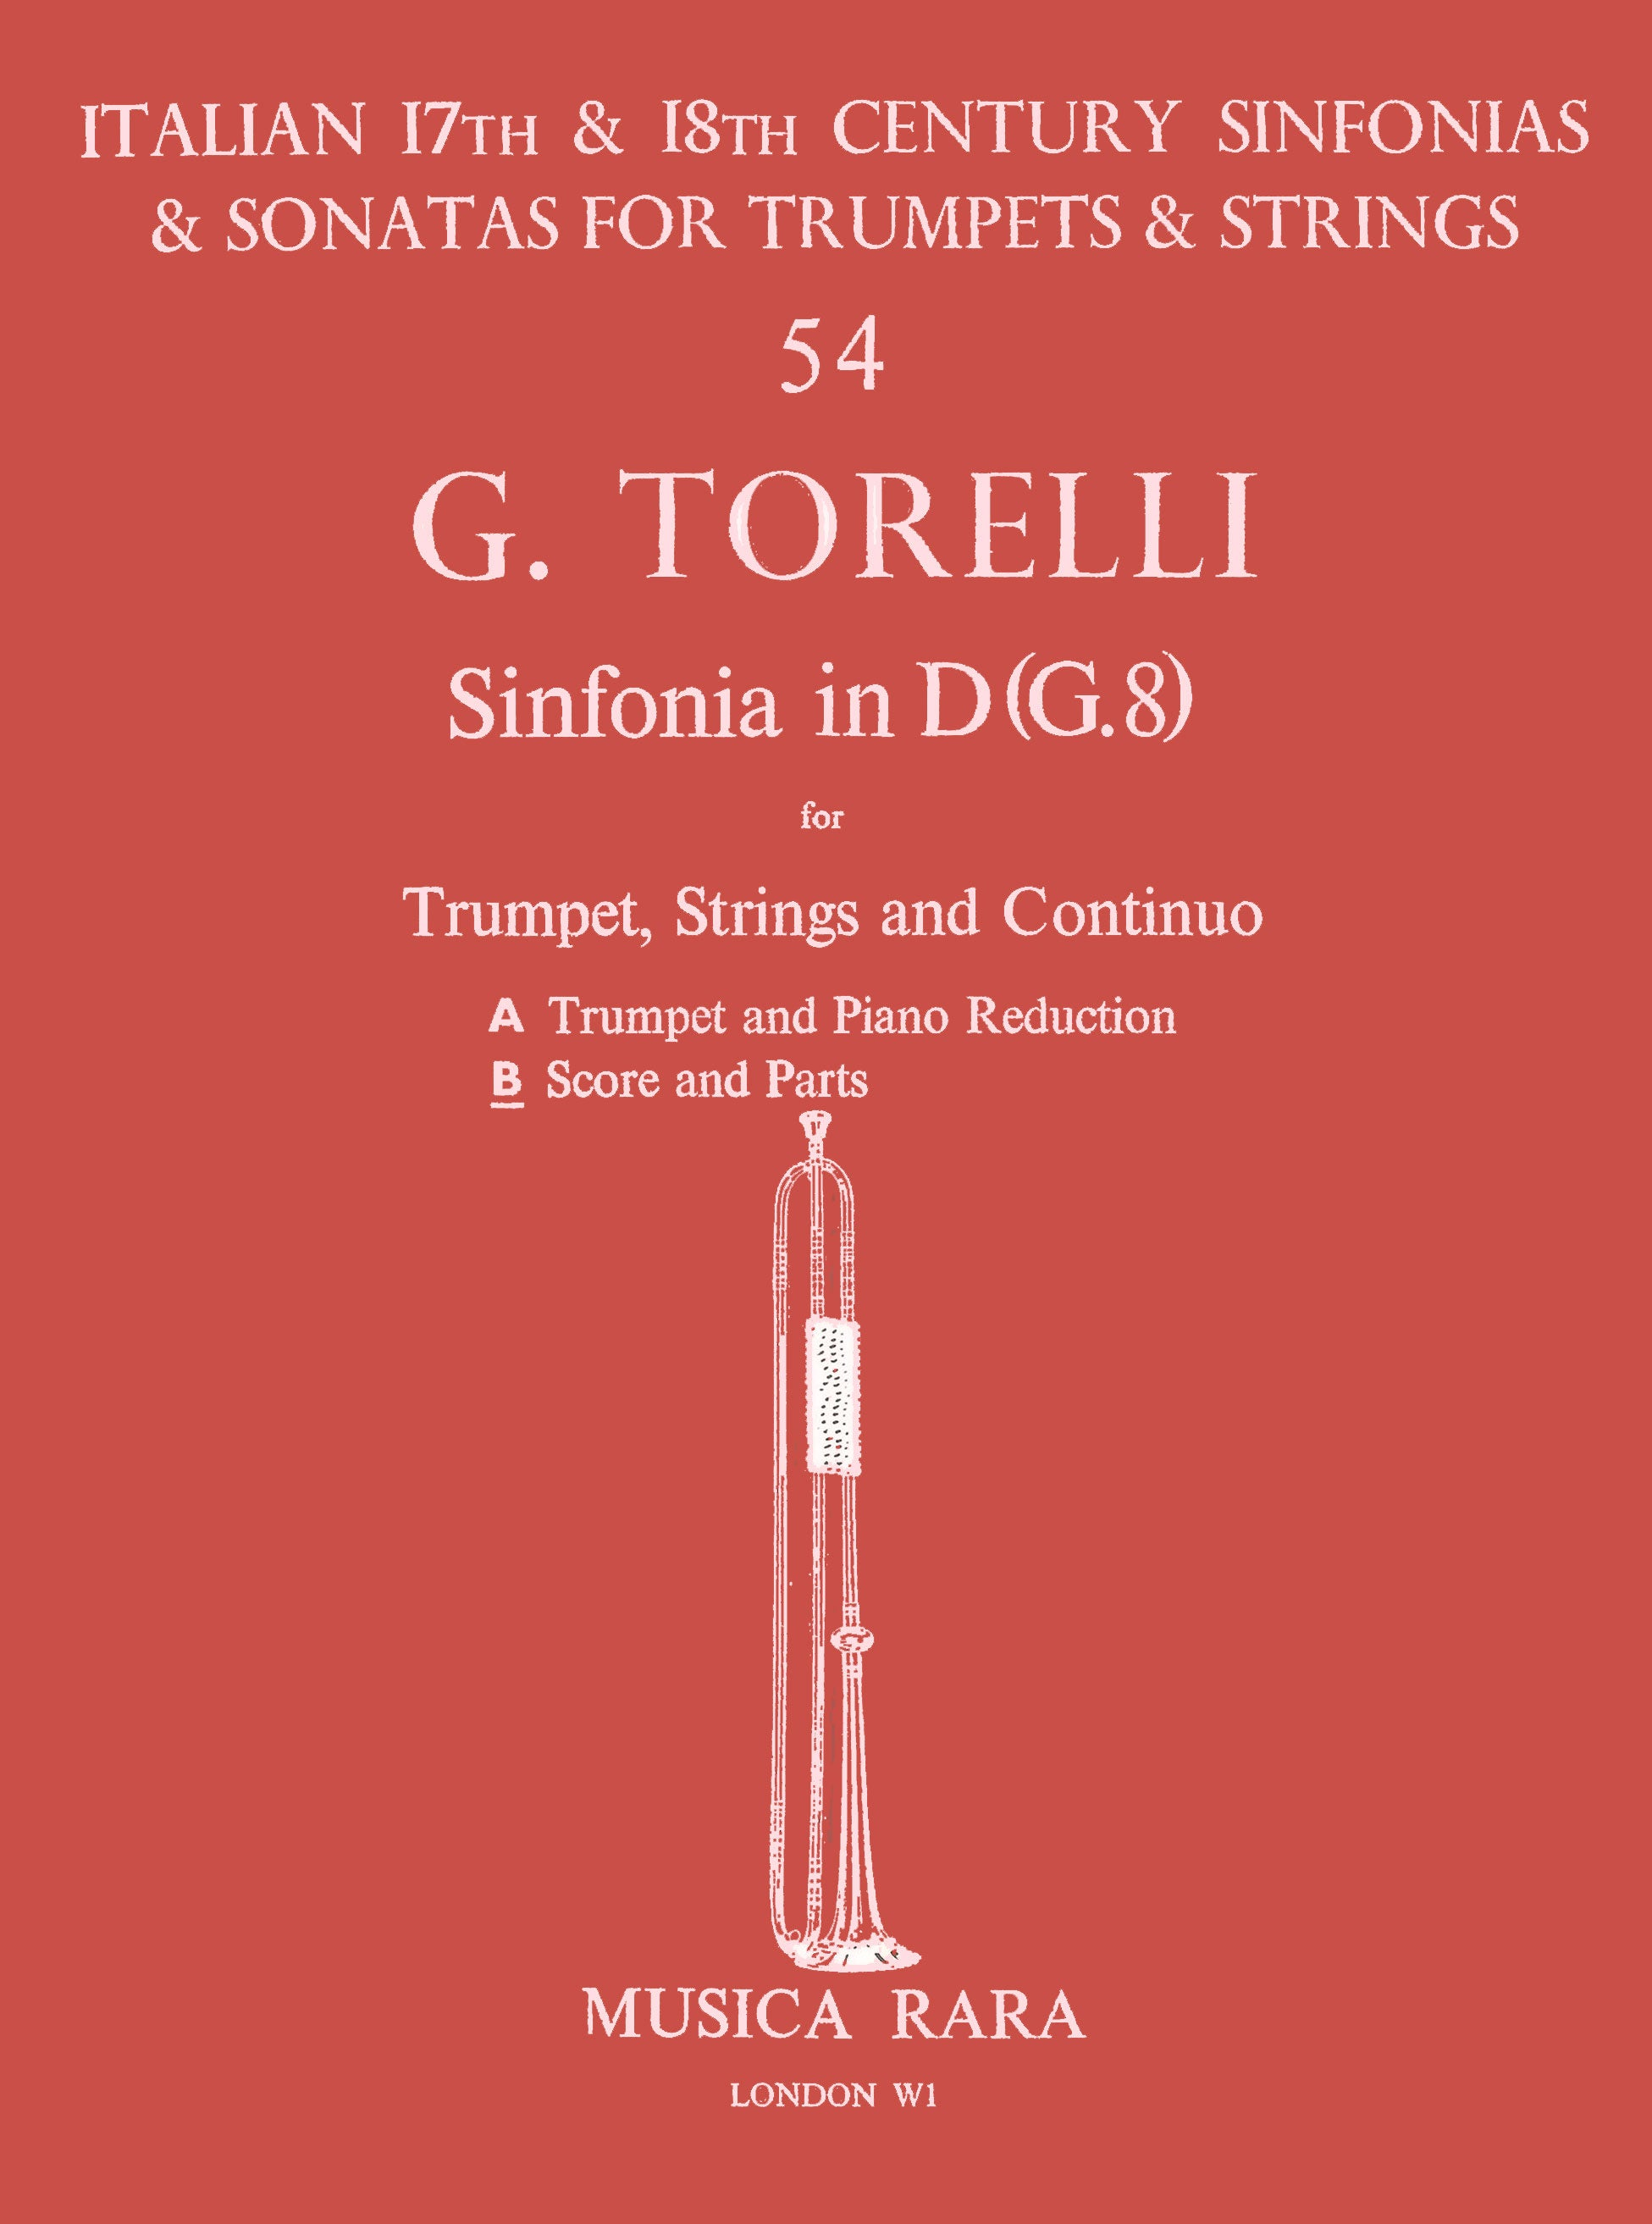 Torelli: Sinfonia in D Major, G. 8